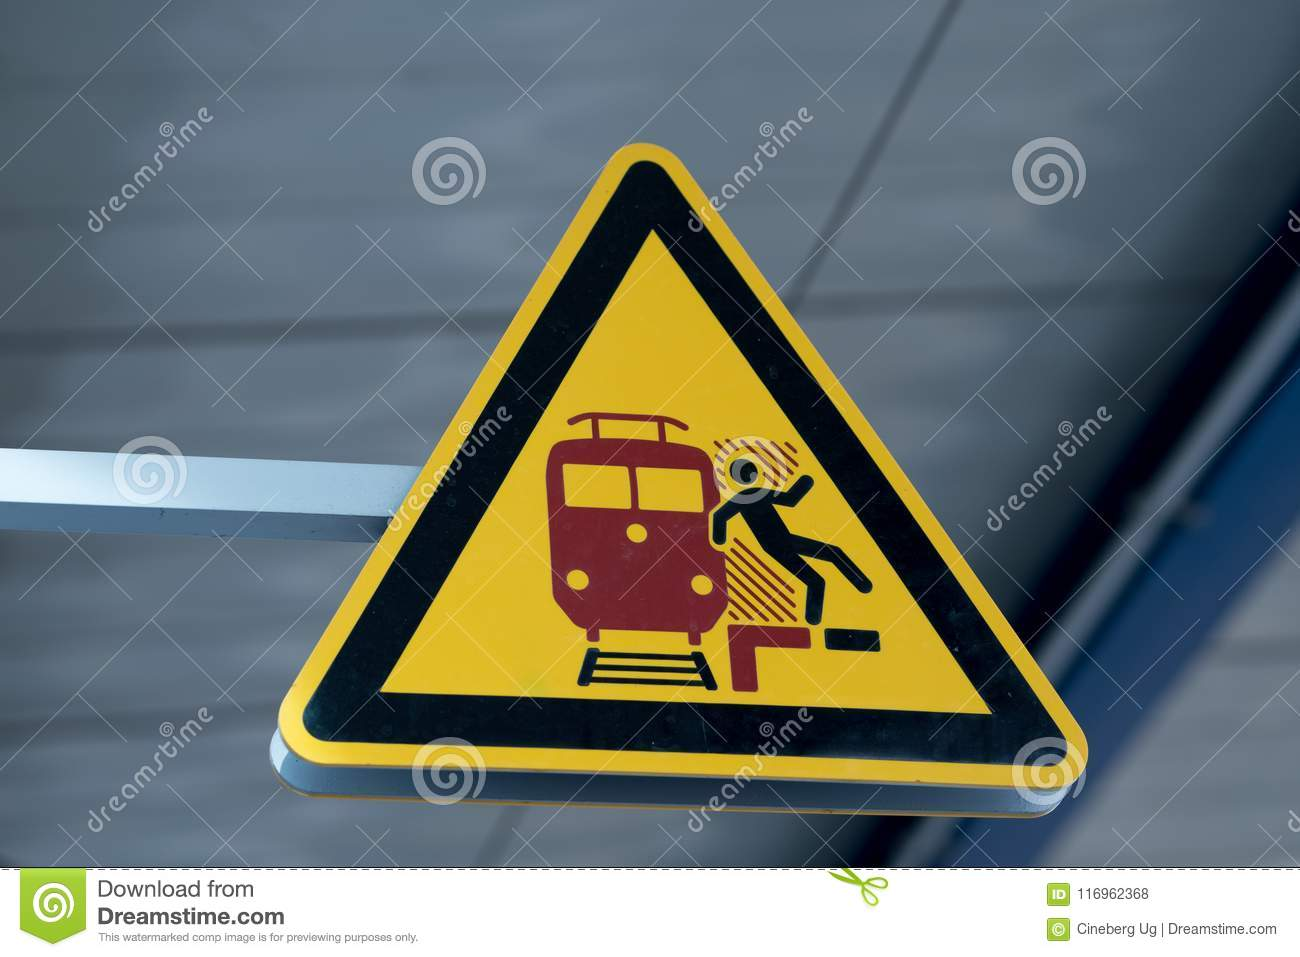 Mind The Gap Warning Sign Stock Photo Image Of Signs 116962368